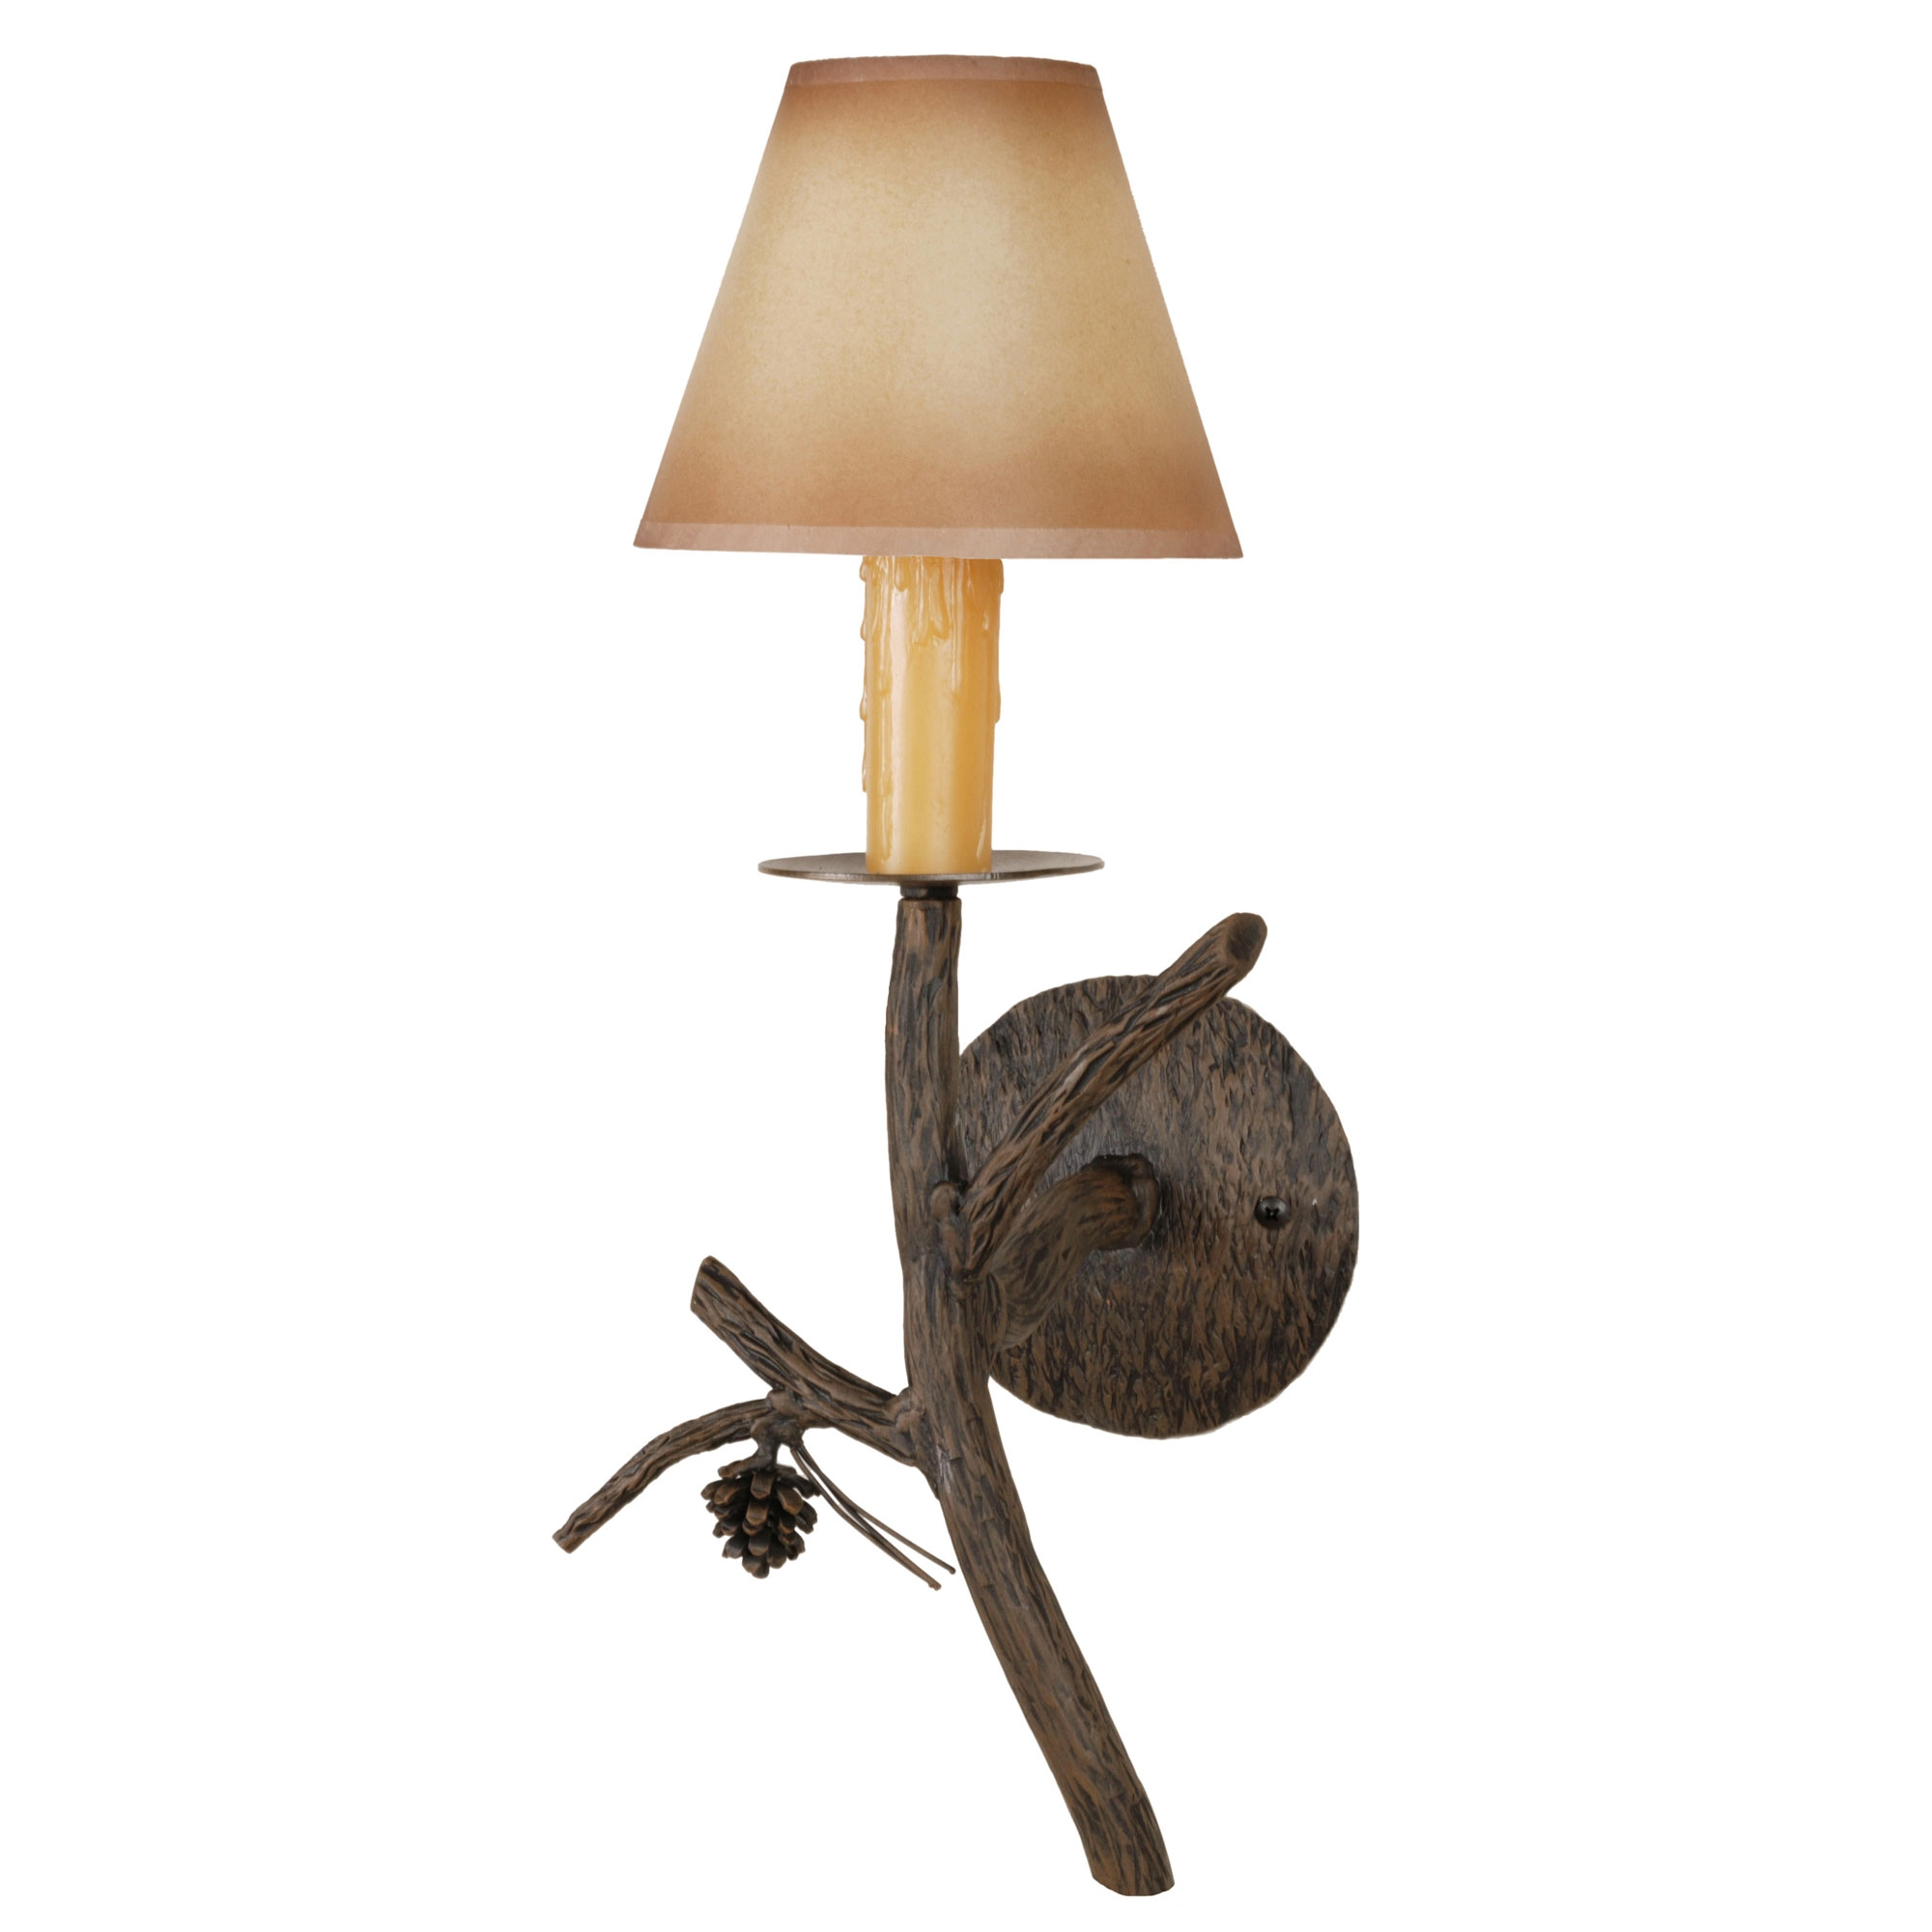 Wall Sconce Candle Covers : Wrought Iron Pine Collection Candle Wall Sconce w/ Candle Drip Cover